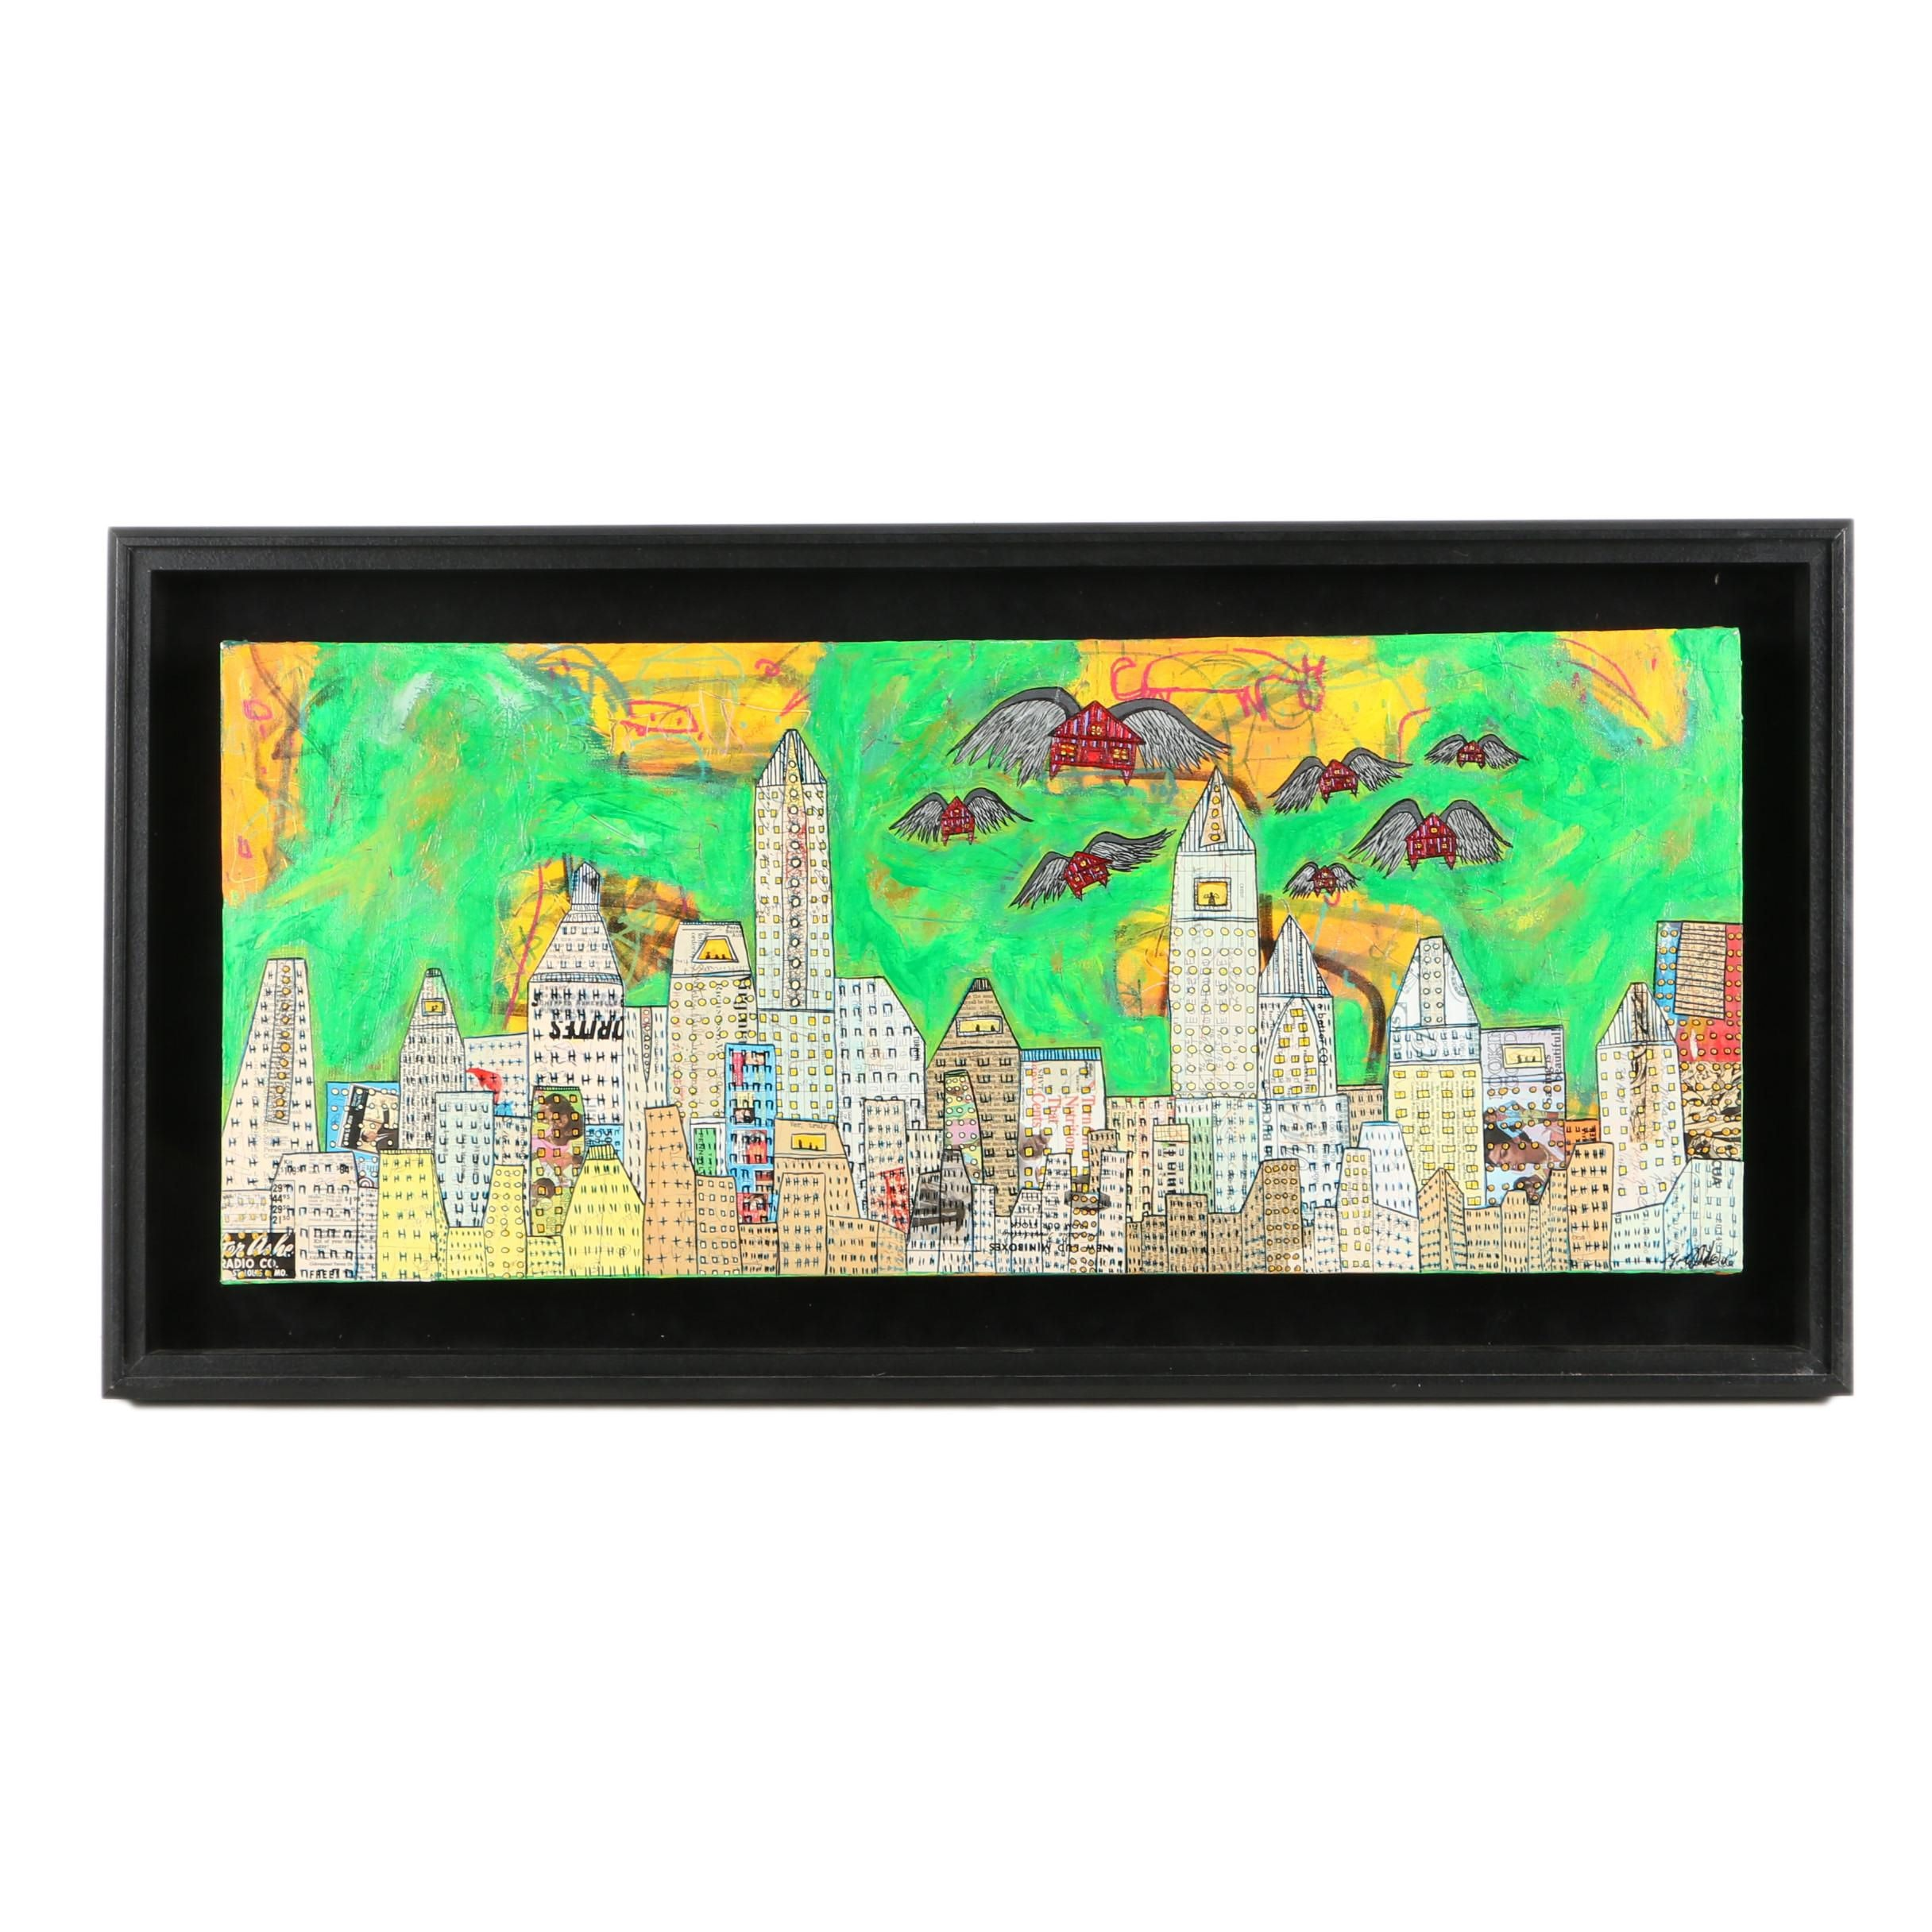 Mixed Media Painting on Canvas of Abstract Cityscape